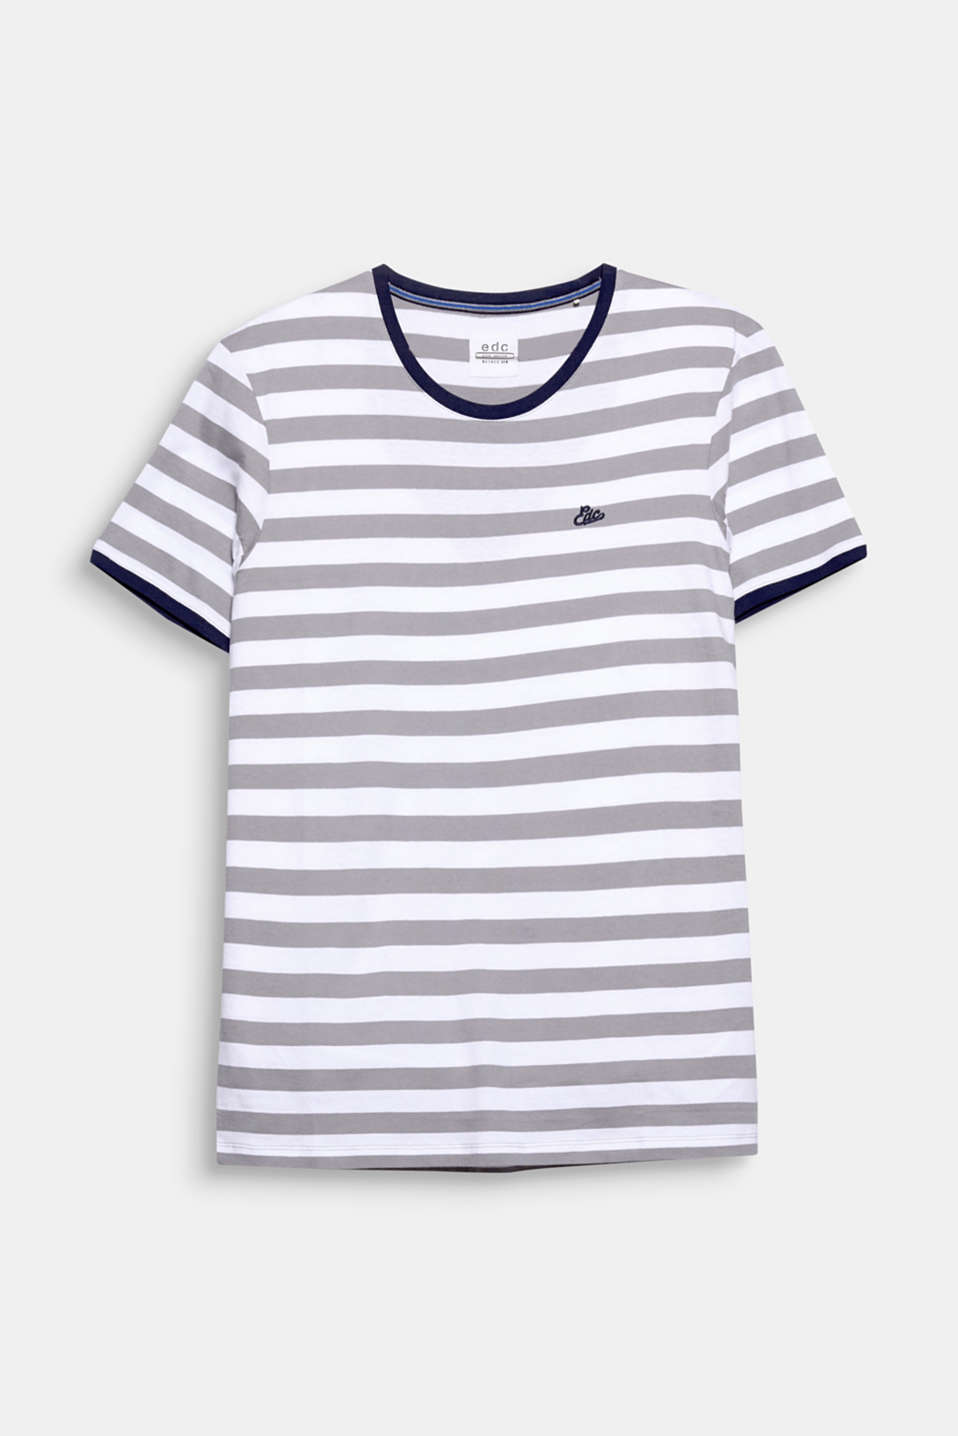 Sporty stripes and contrasting colour ribbed cuffs give this pure cotton T-shirt a distinctive look.